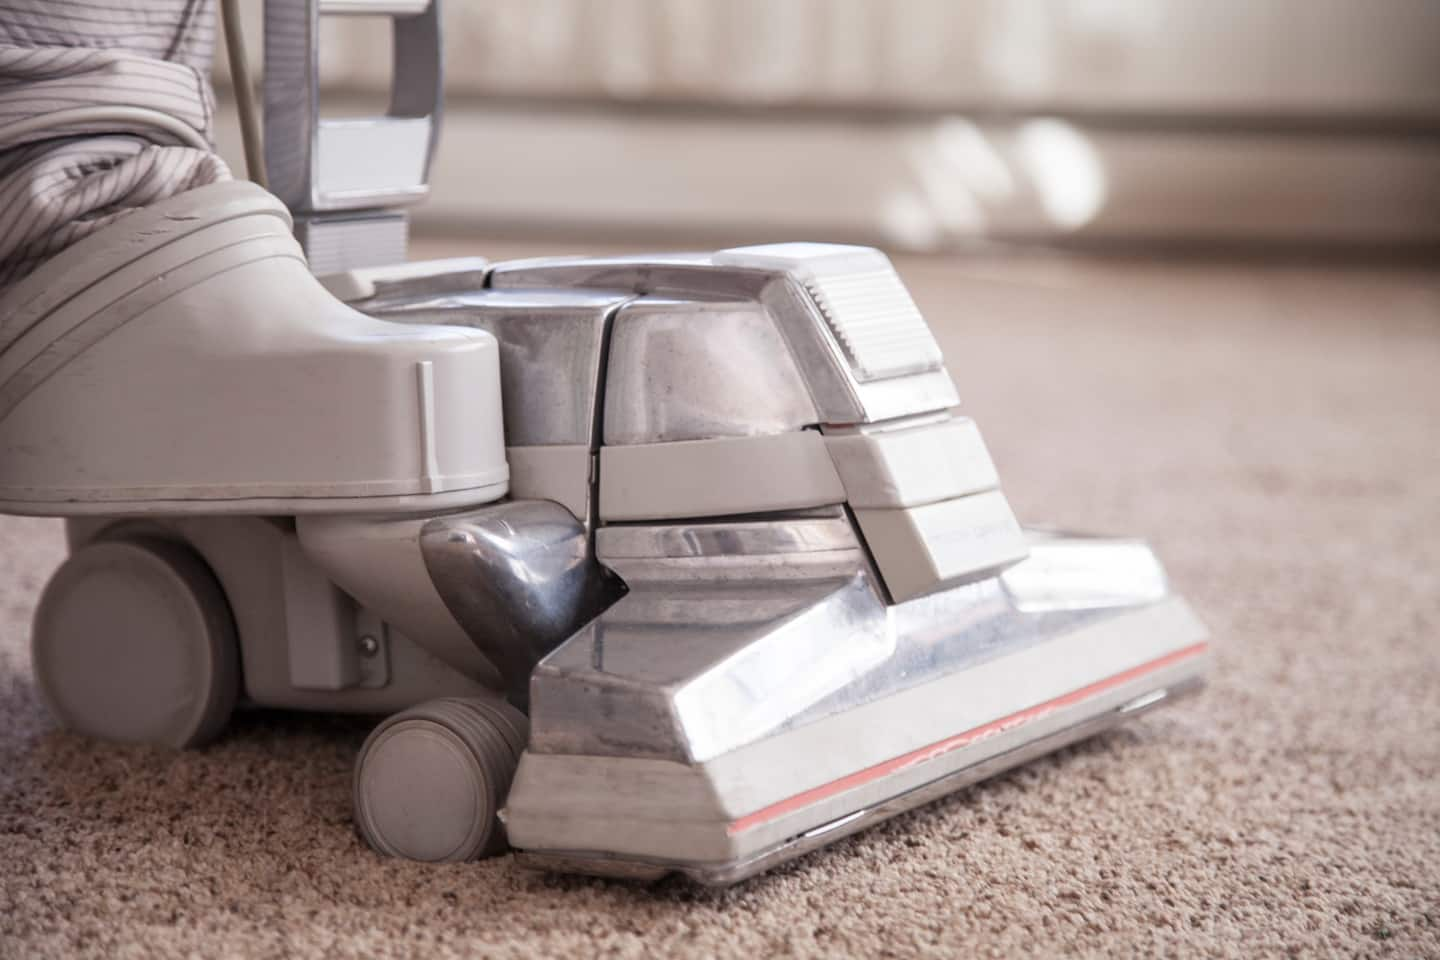 How To Get Rid Of Carpet Odor From Water Damage Meze Blog